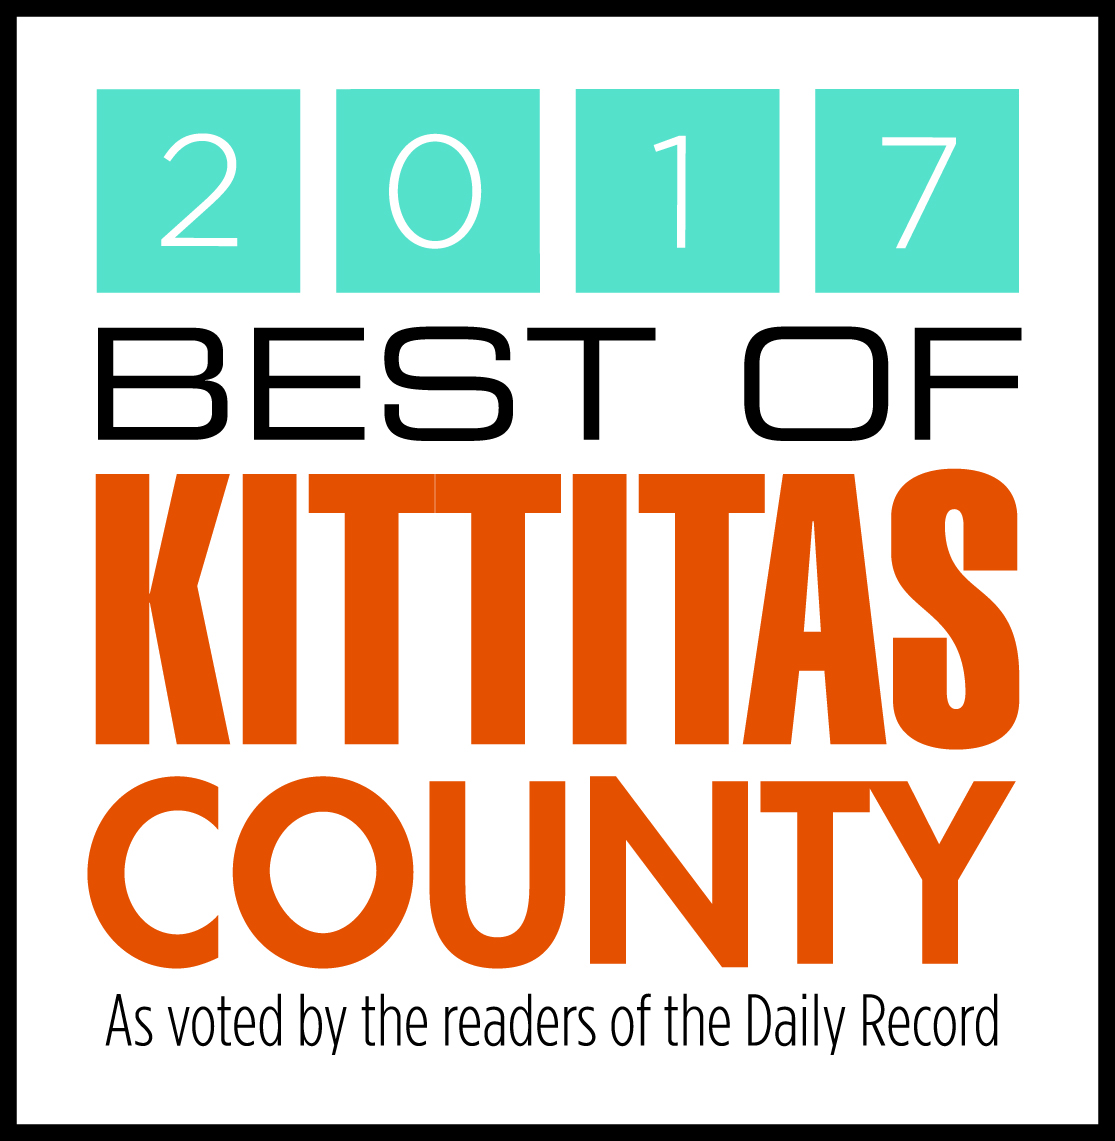 2017 Best of Kittitas County!